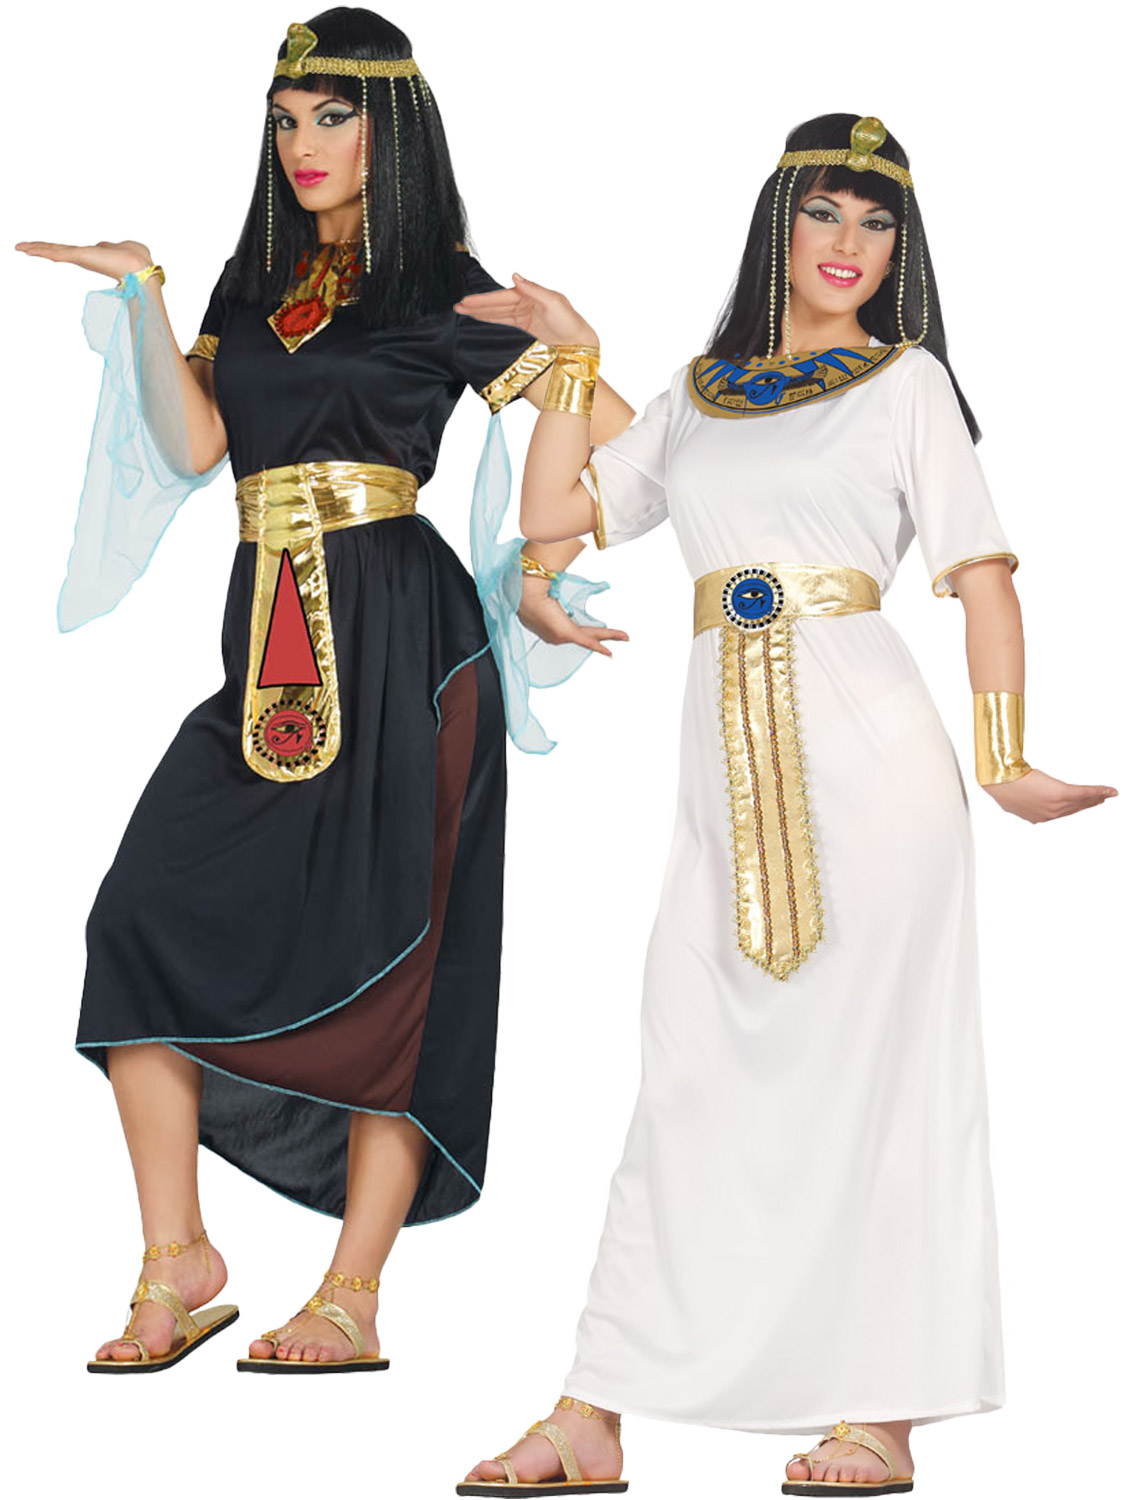 Ladies cleopatra costume egyptian toga fancy dress womens ancient transform yourself into an egyptian queen with either of these ladies cleopatra costume perfect for a themed fancy dress party solutioingenieria Choice Image